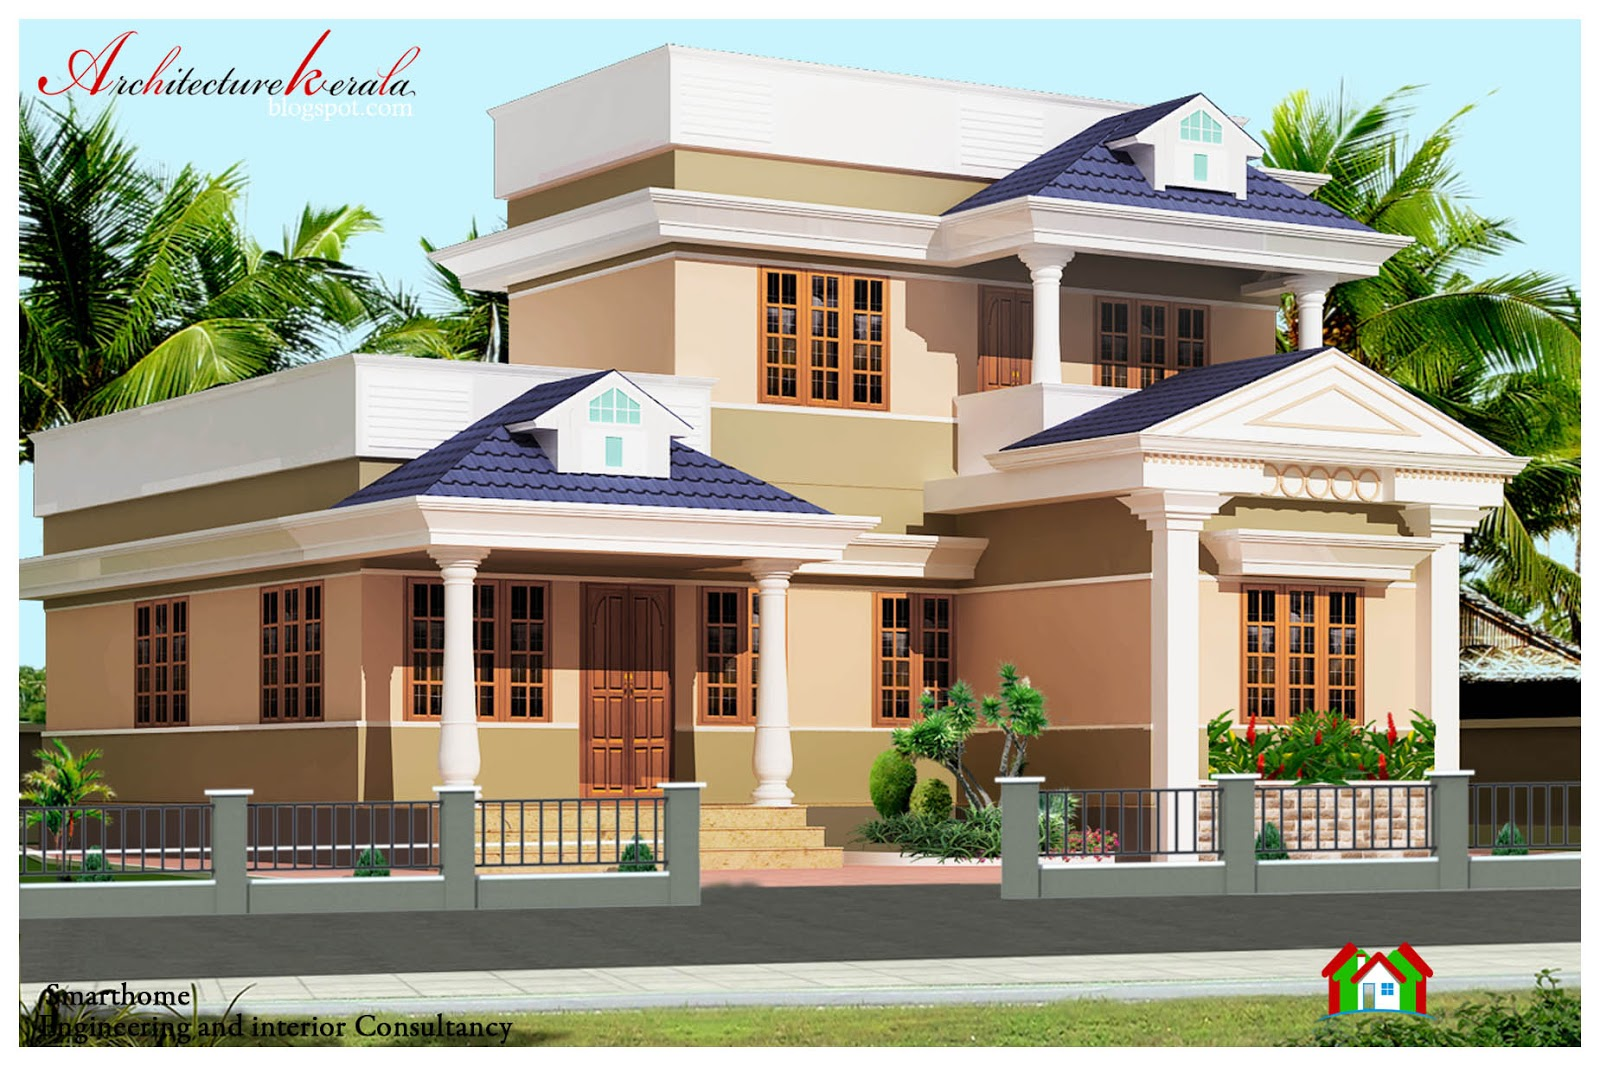 1388 SQFT kerala style house elevation